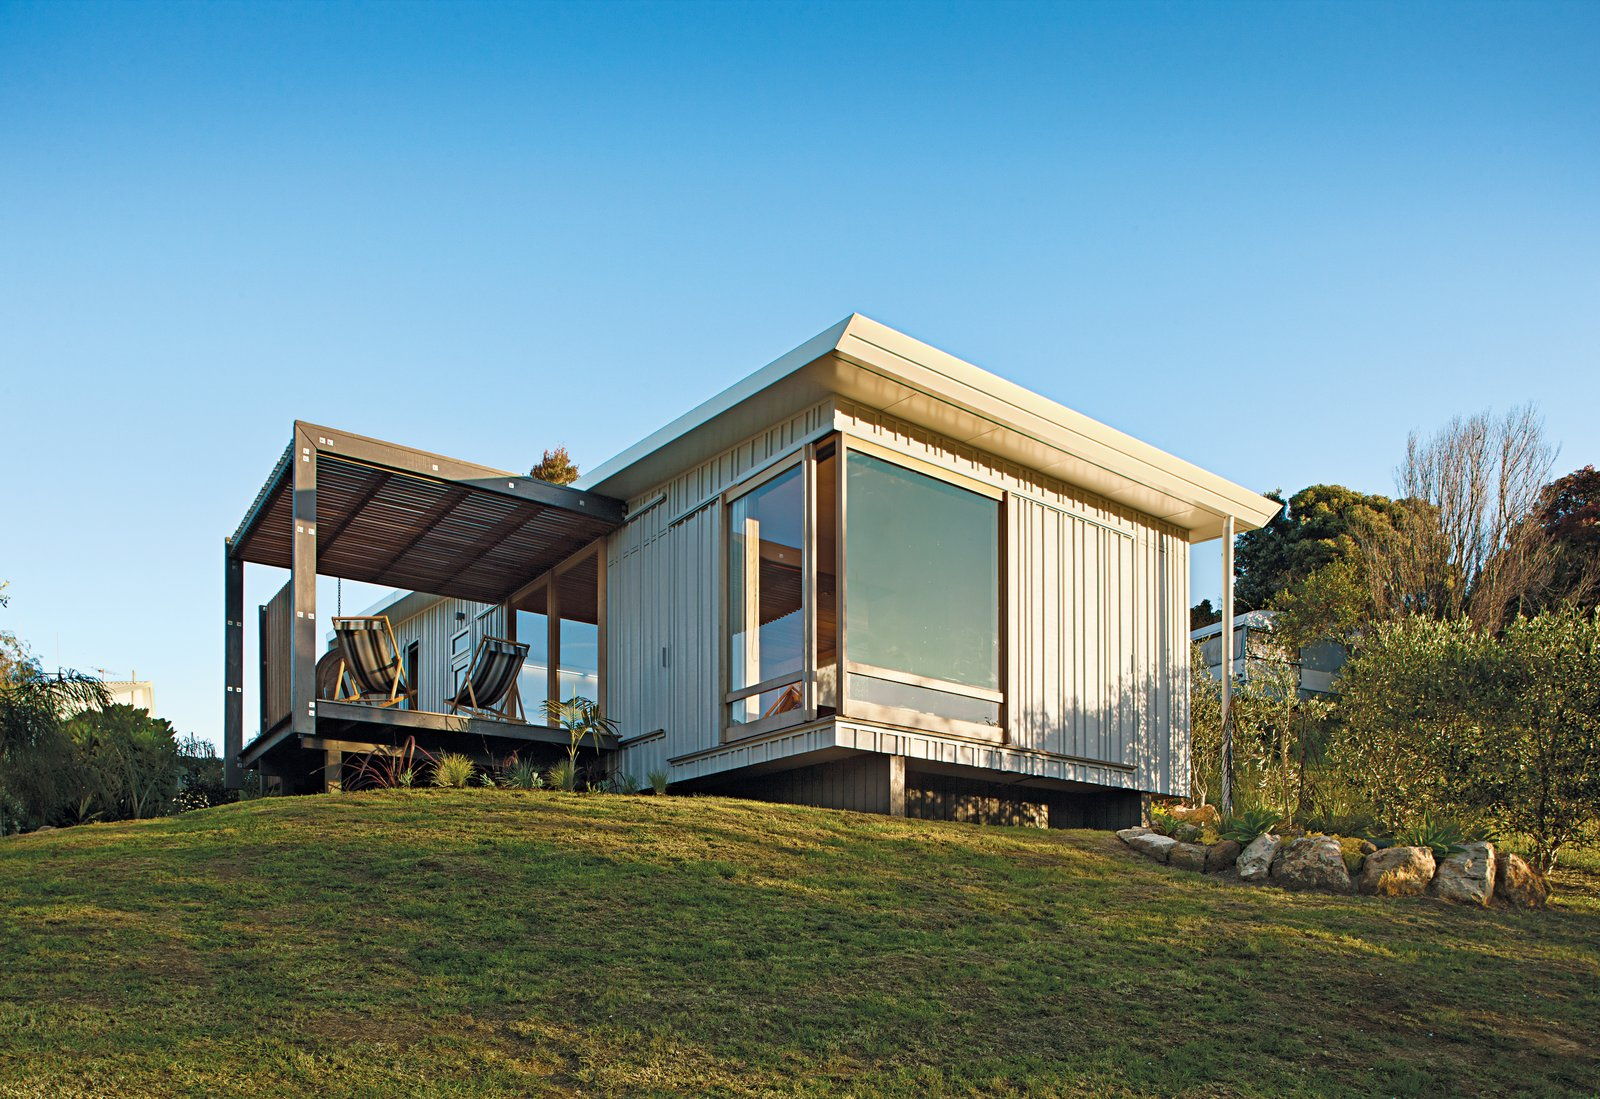 A compact prefab vacation home in the seaside community of Onemana Beach is clad in plywood and vertical timber battens finished in Resene's Lumbersider paint in Foam.  Photo 2 of 8 in Students Pass Their Class by Building a House in New Zealand